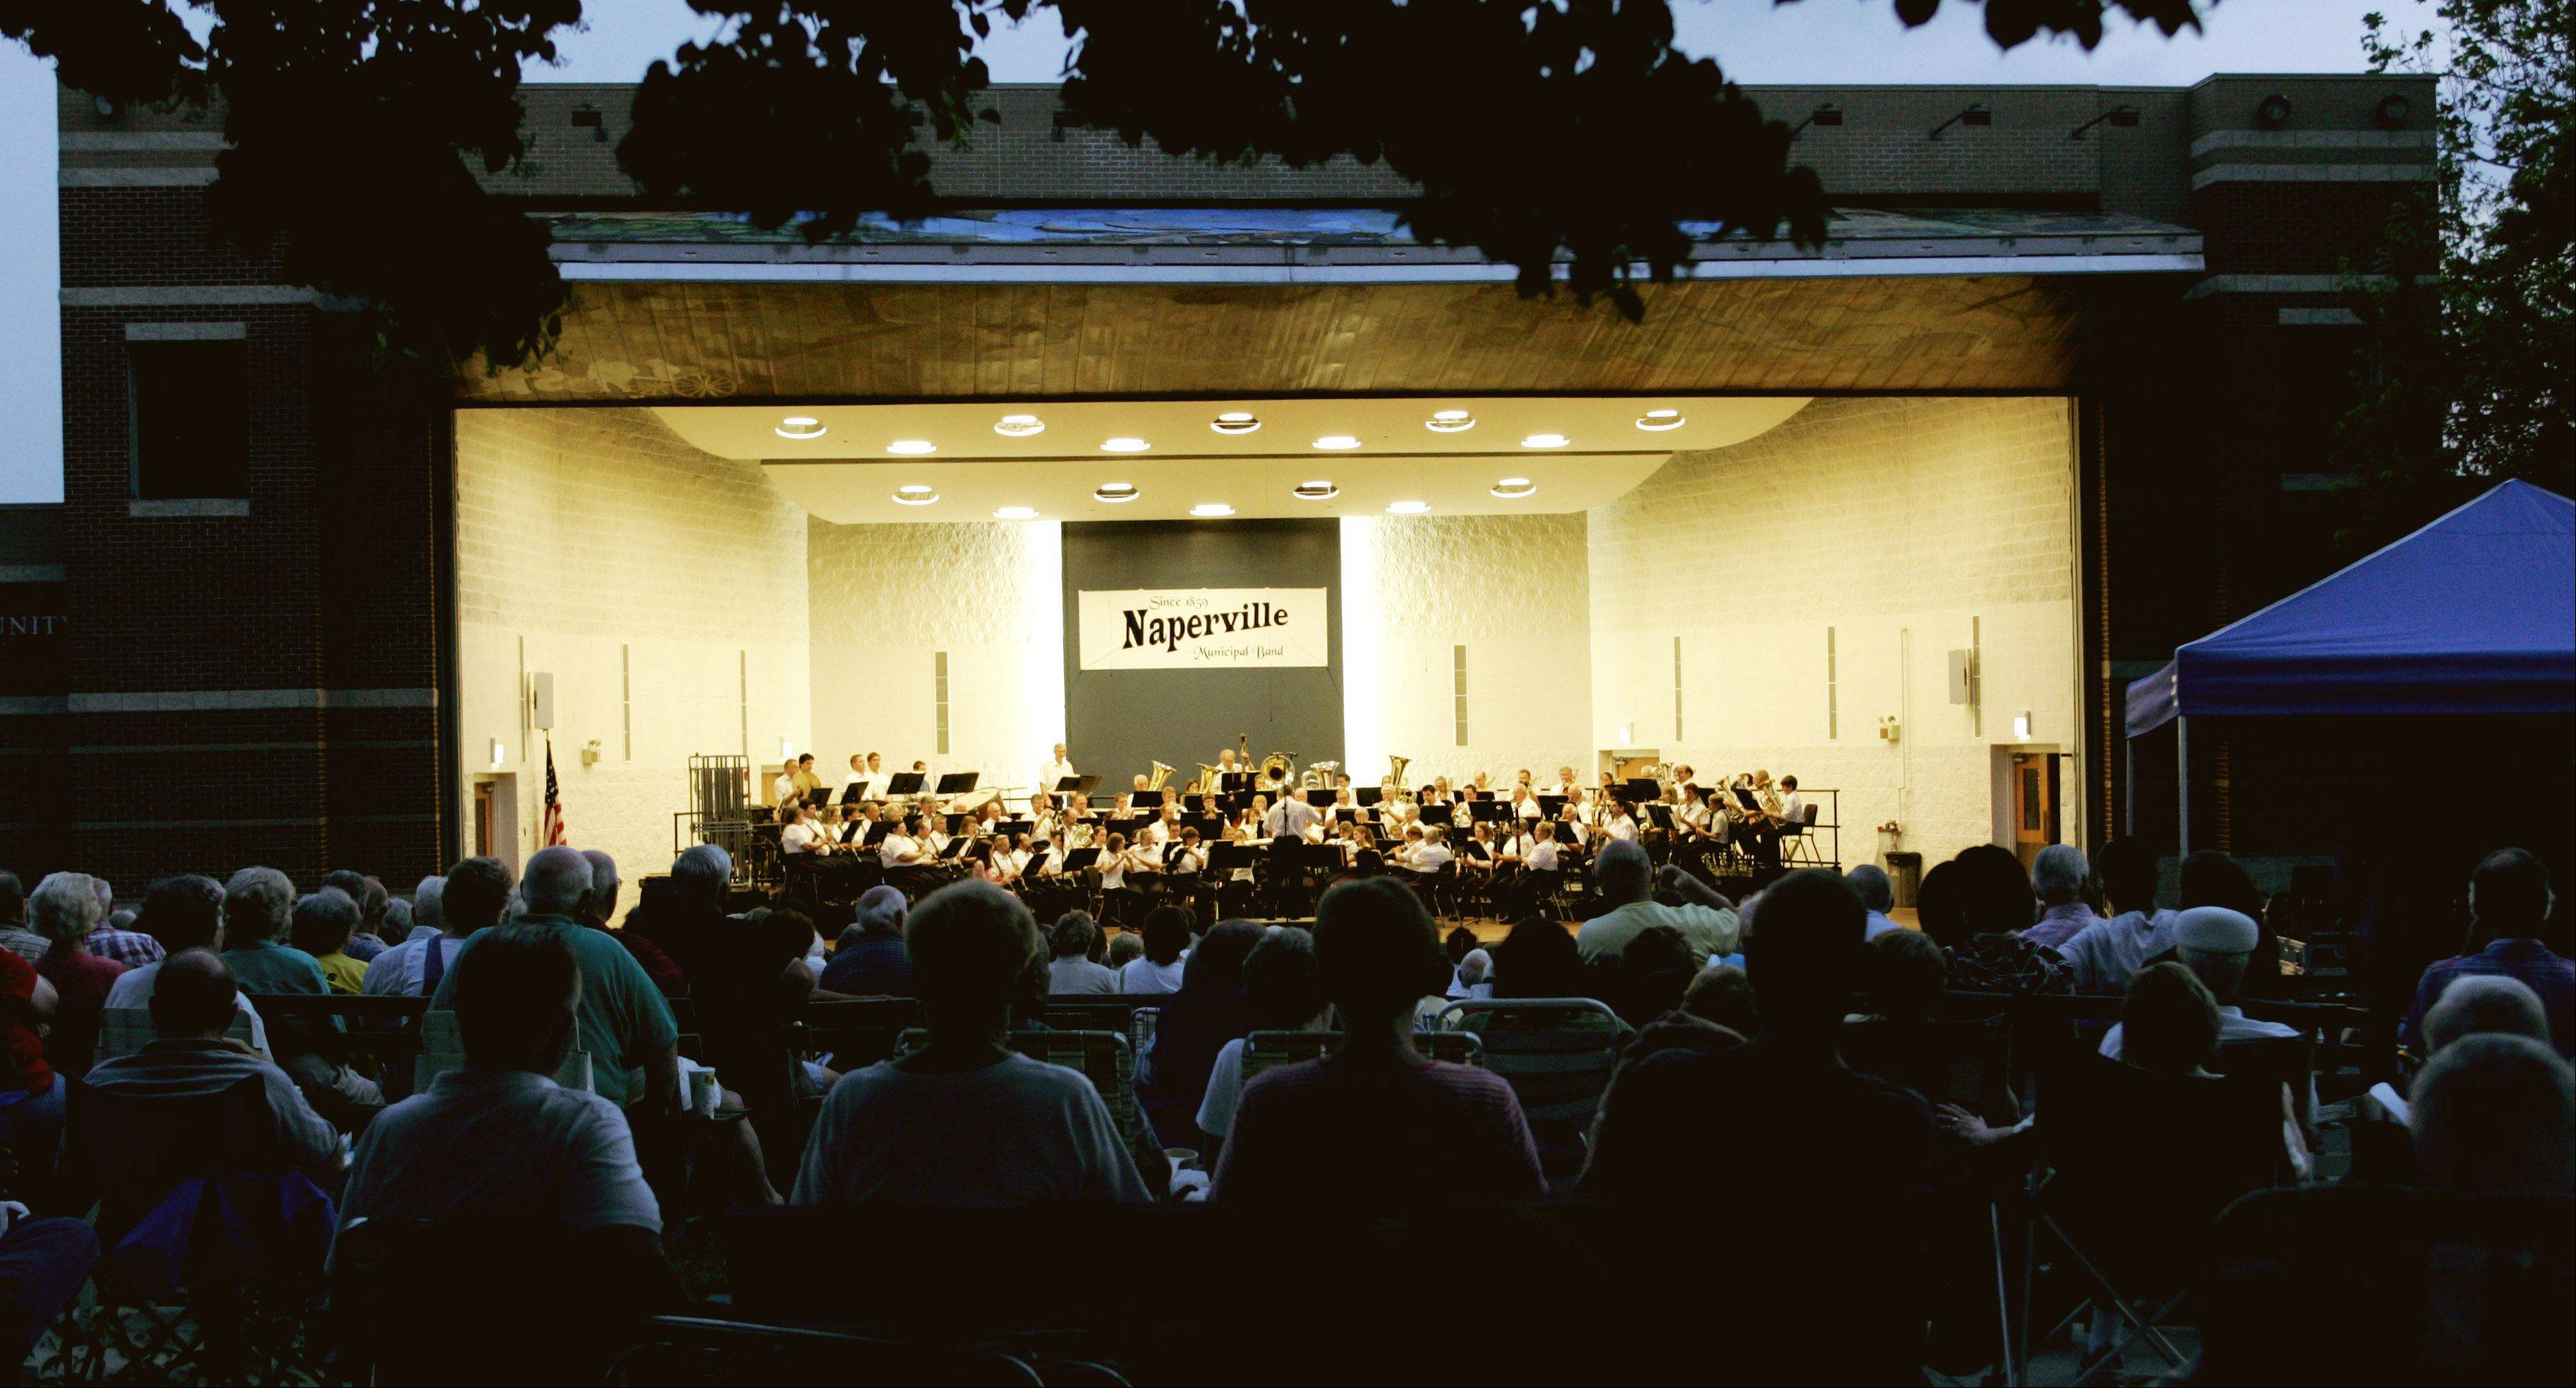 The Sousa National Community band, hosted by the Naperville Municipal Band, will perform at 7 p.m. Sunday, July 10, at the Community Concert Center, 104 E. Benton Ave. The annual concert attracts musicians from across the country and is conducted by the acclaimed Col. John Bourgeois, formerly of the U.S. Marine Band.